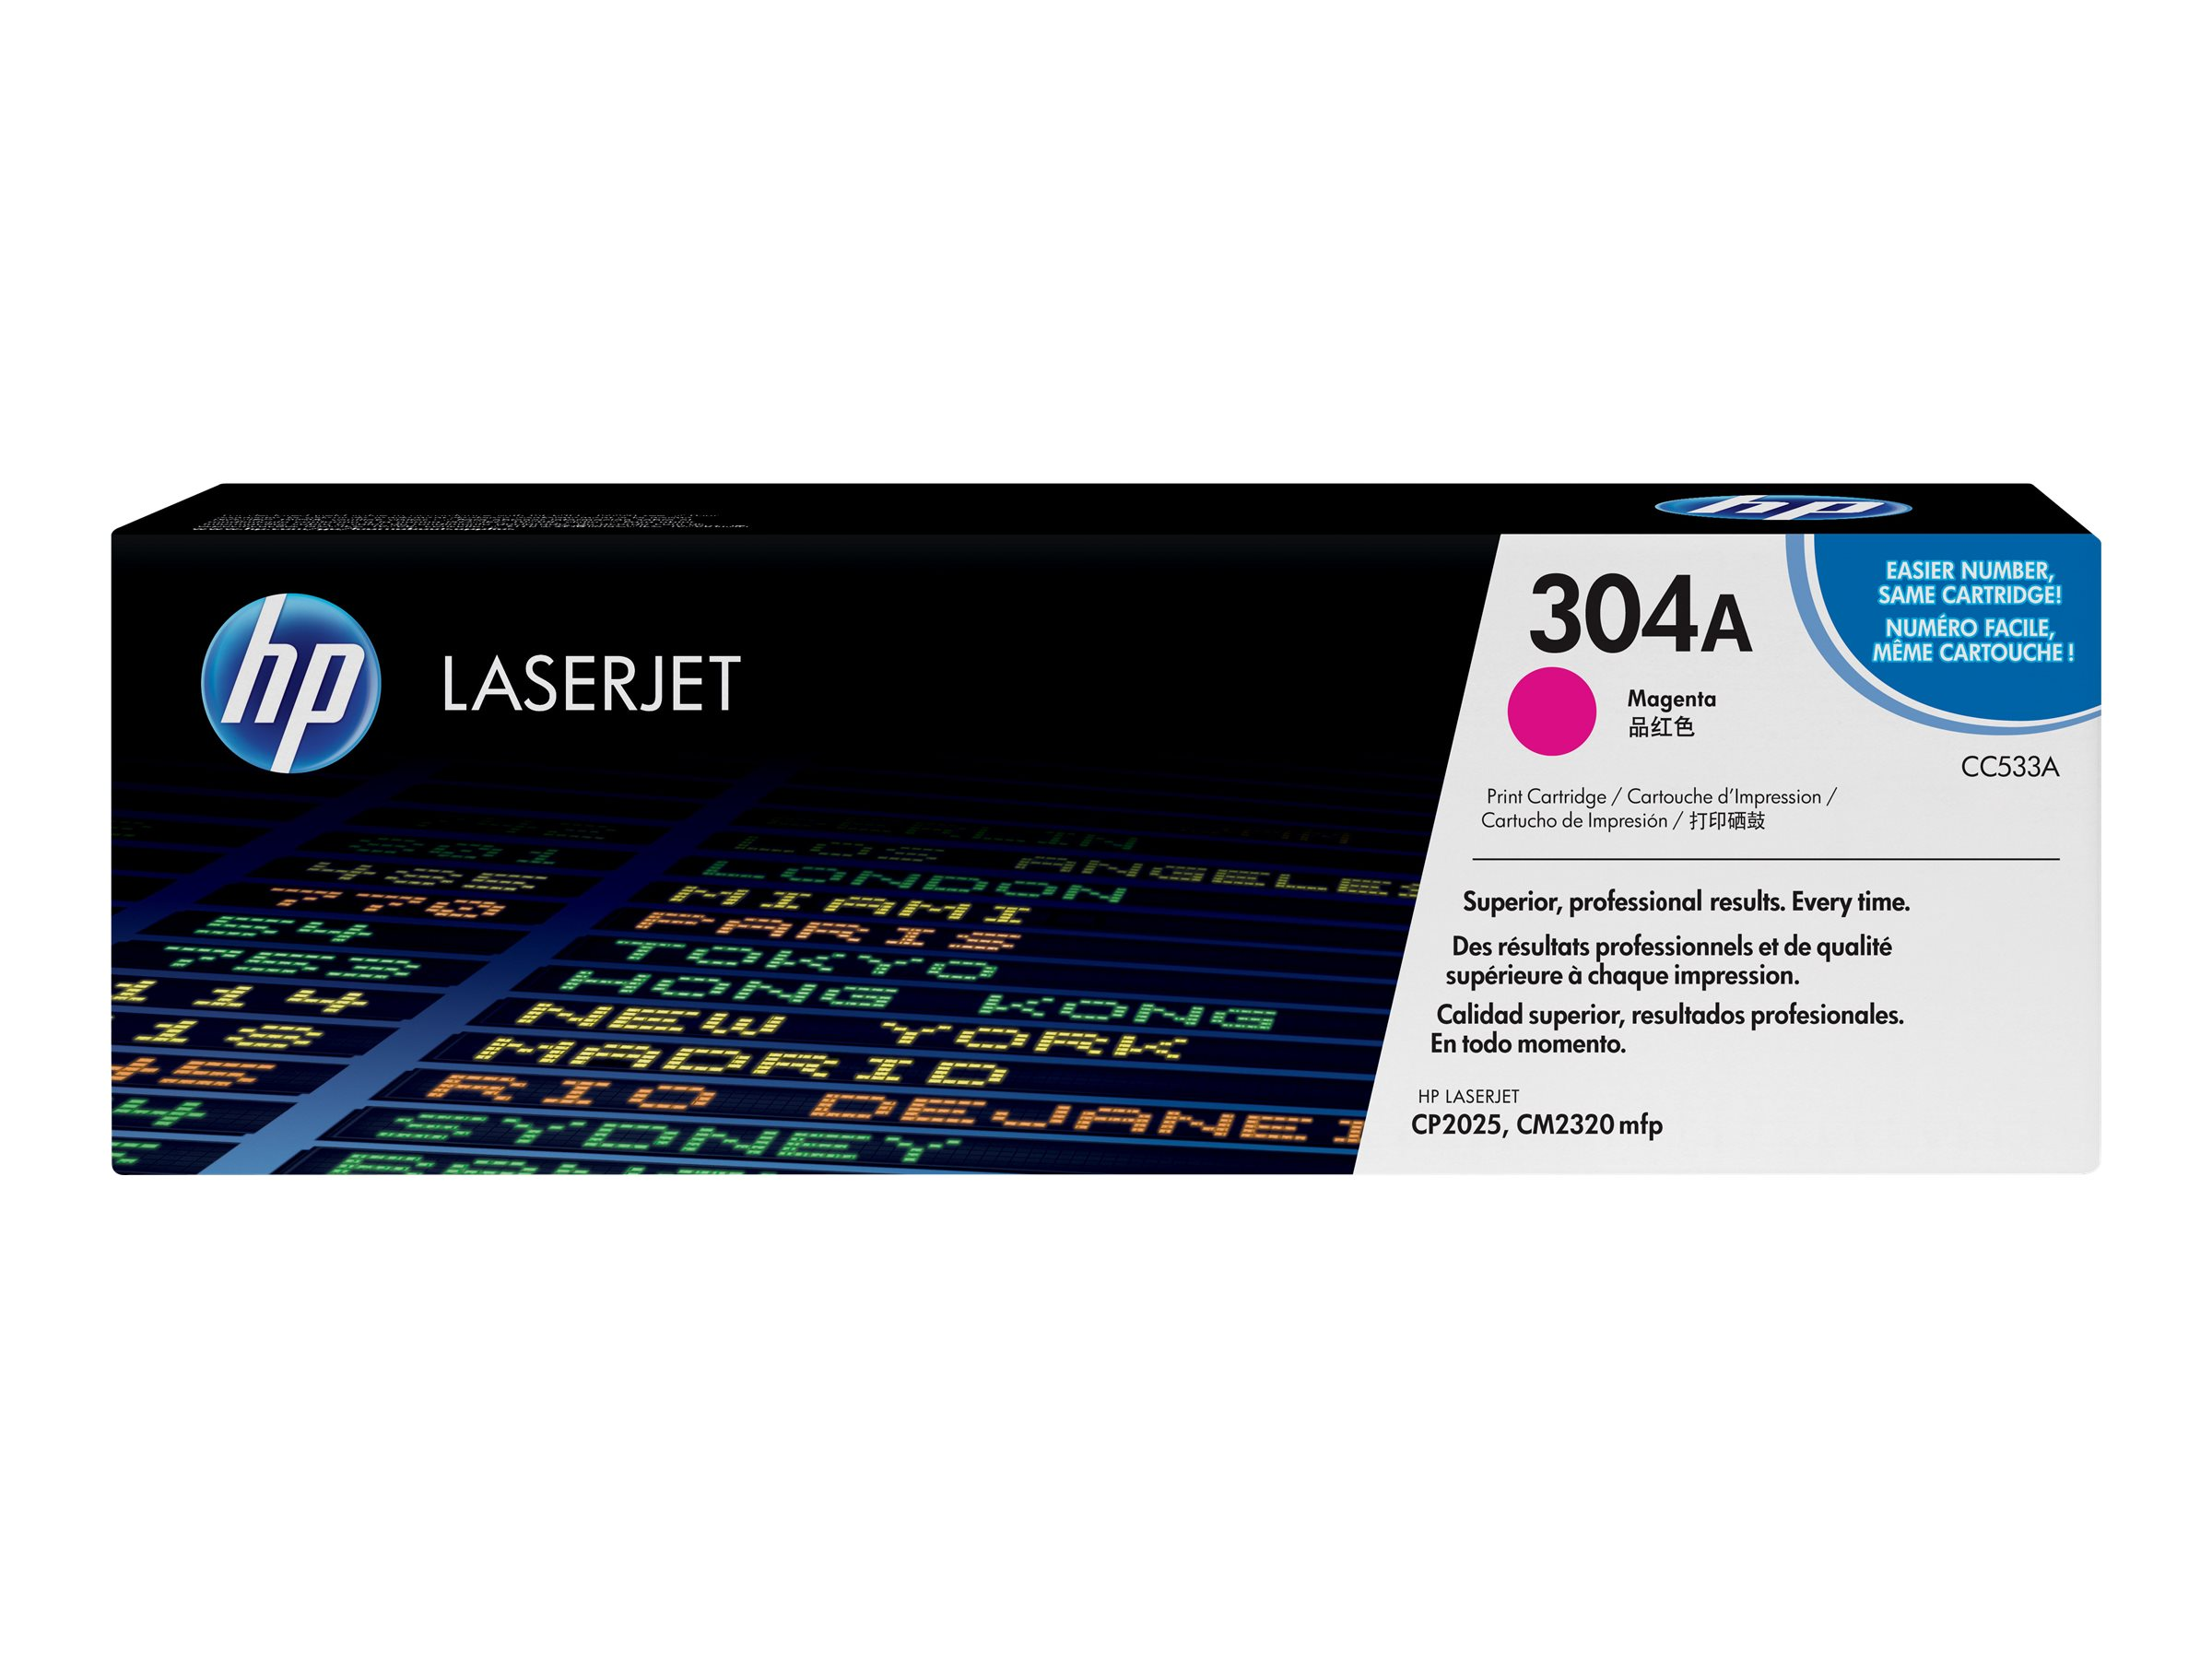 HP 304A - magenta - original - LaserJet - toner cartridge (CC533A)